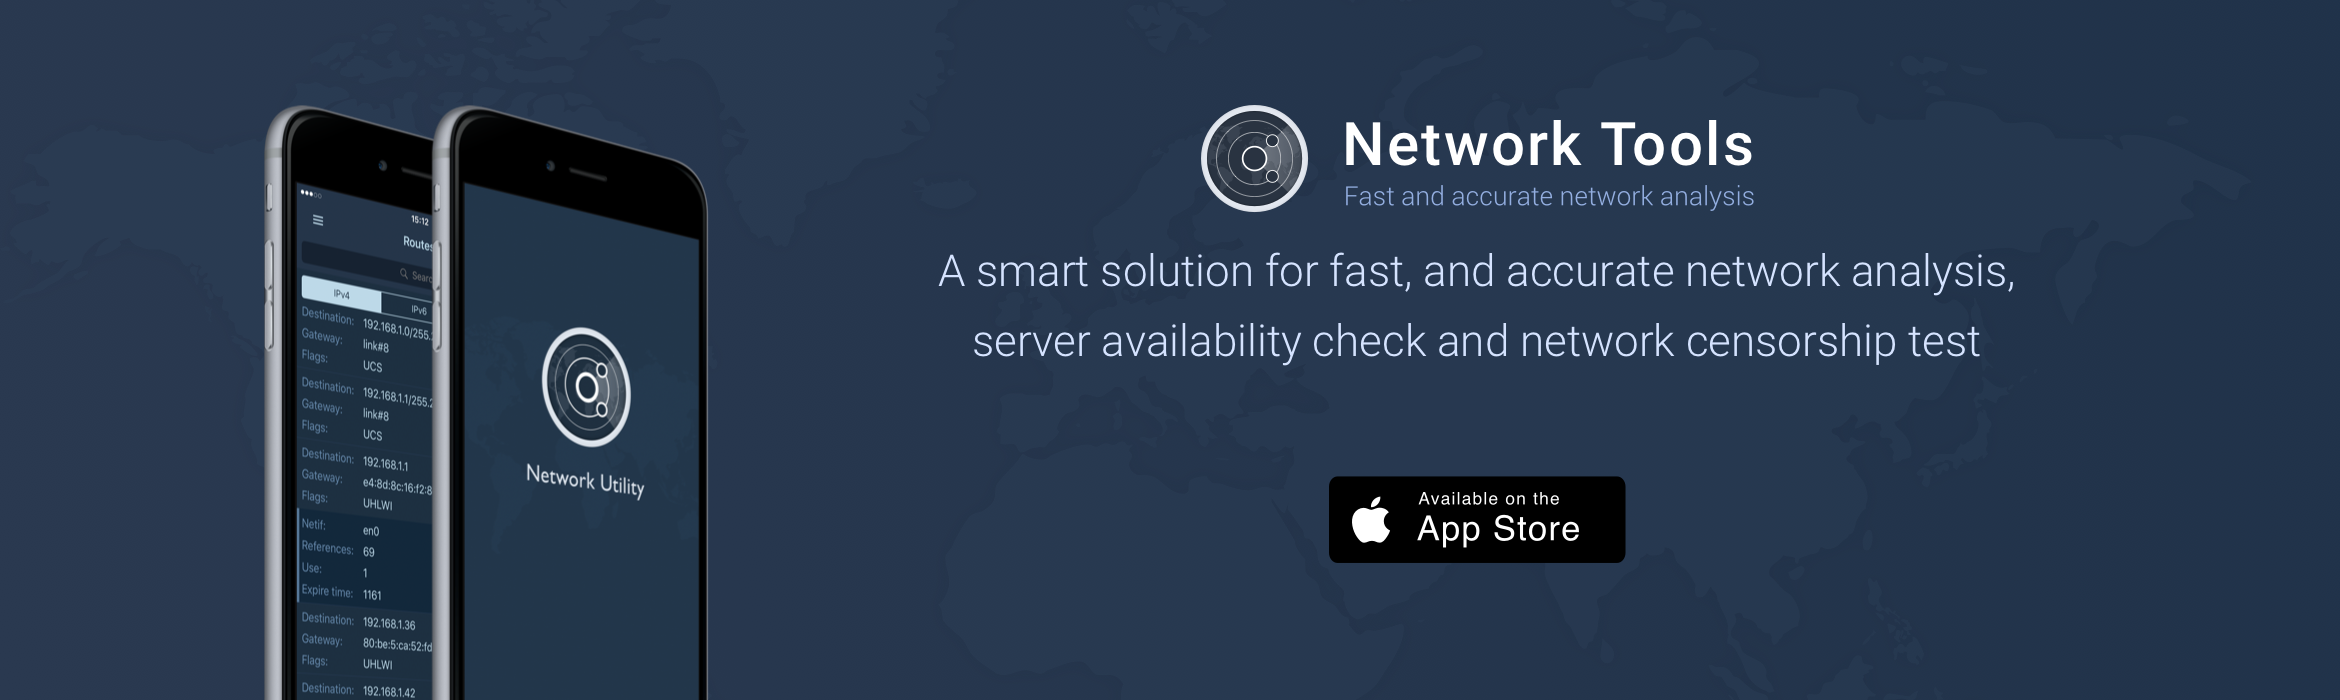 Network_tool copy